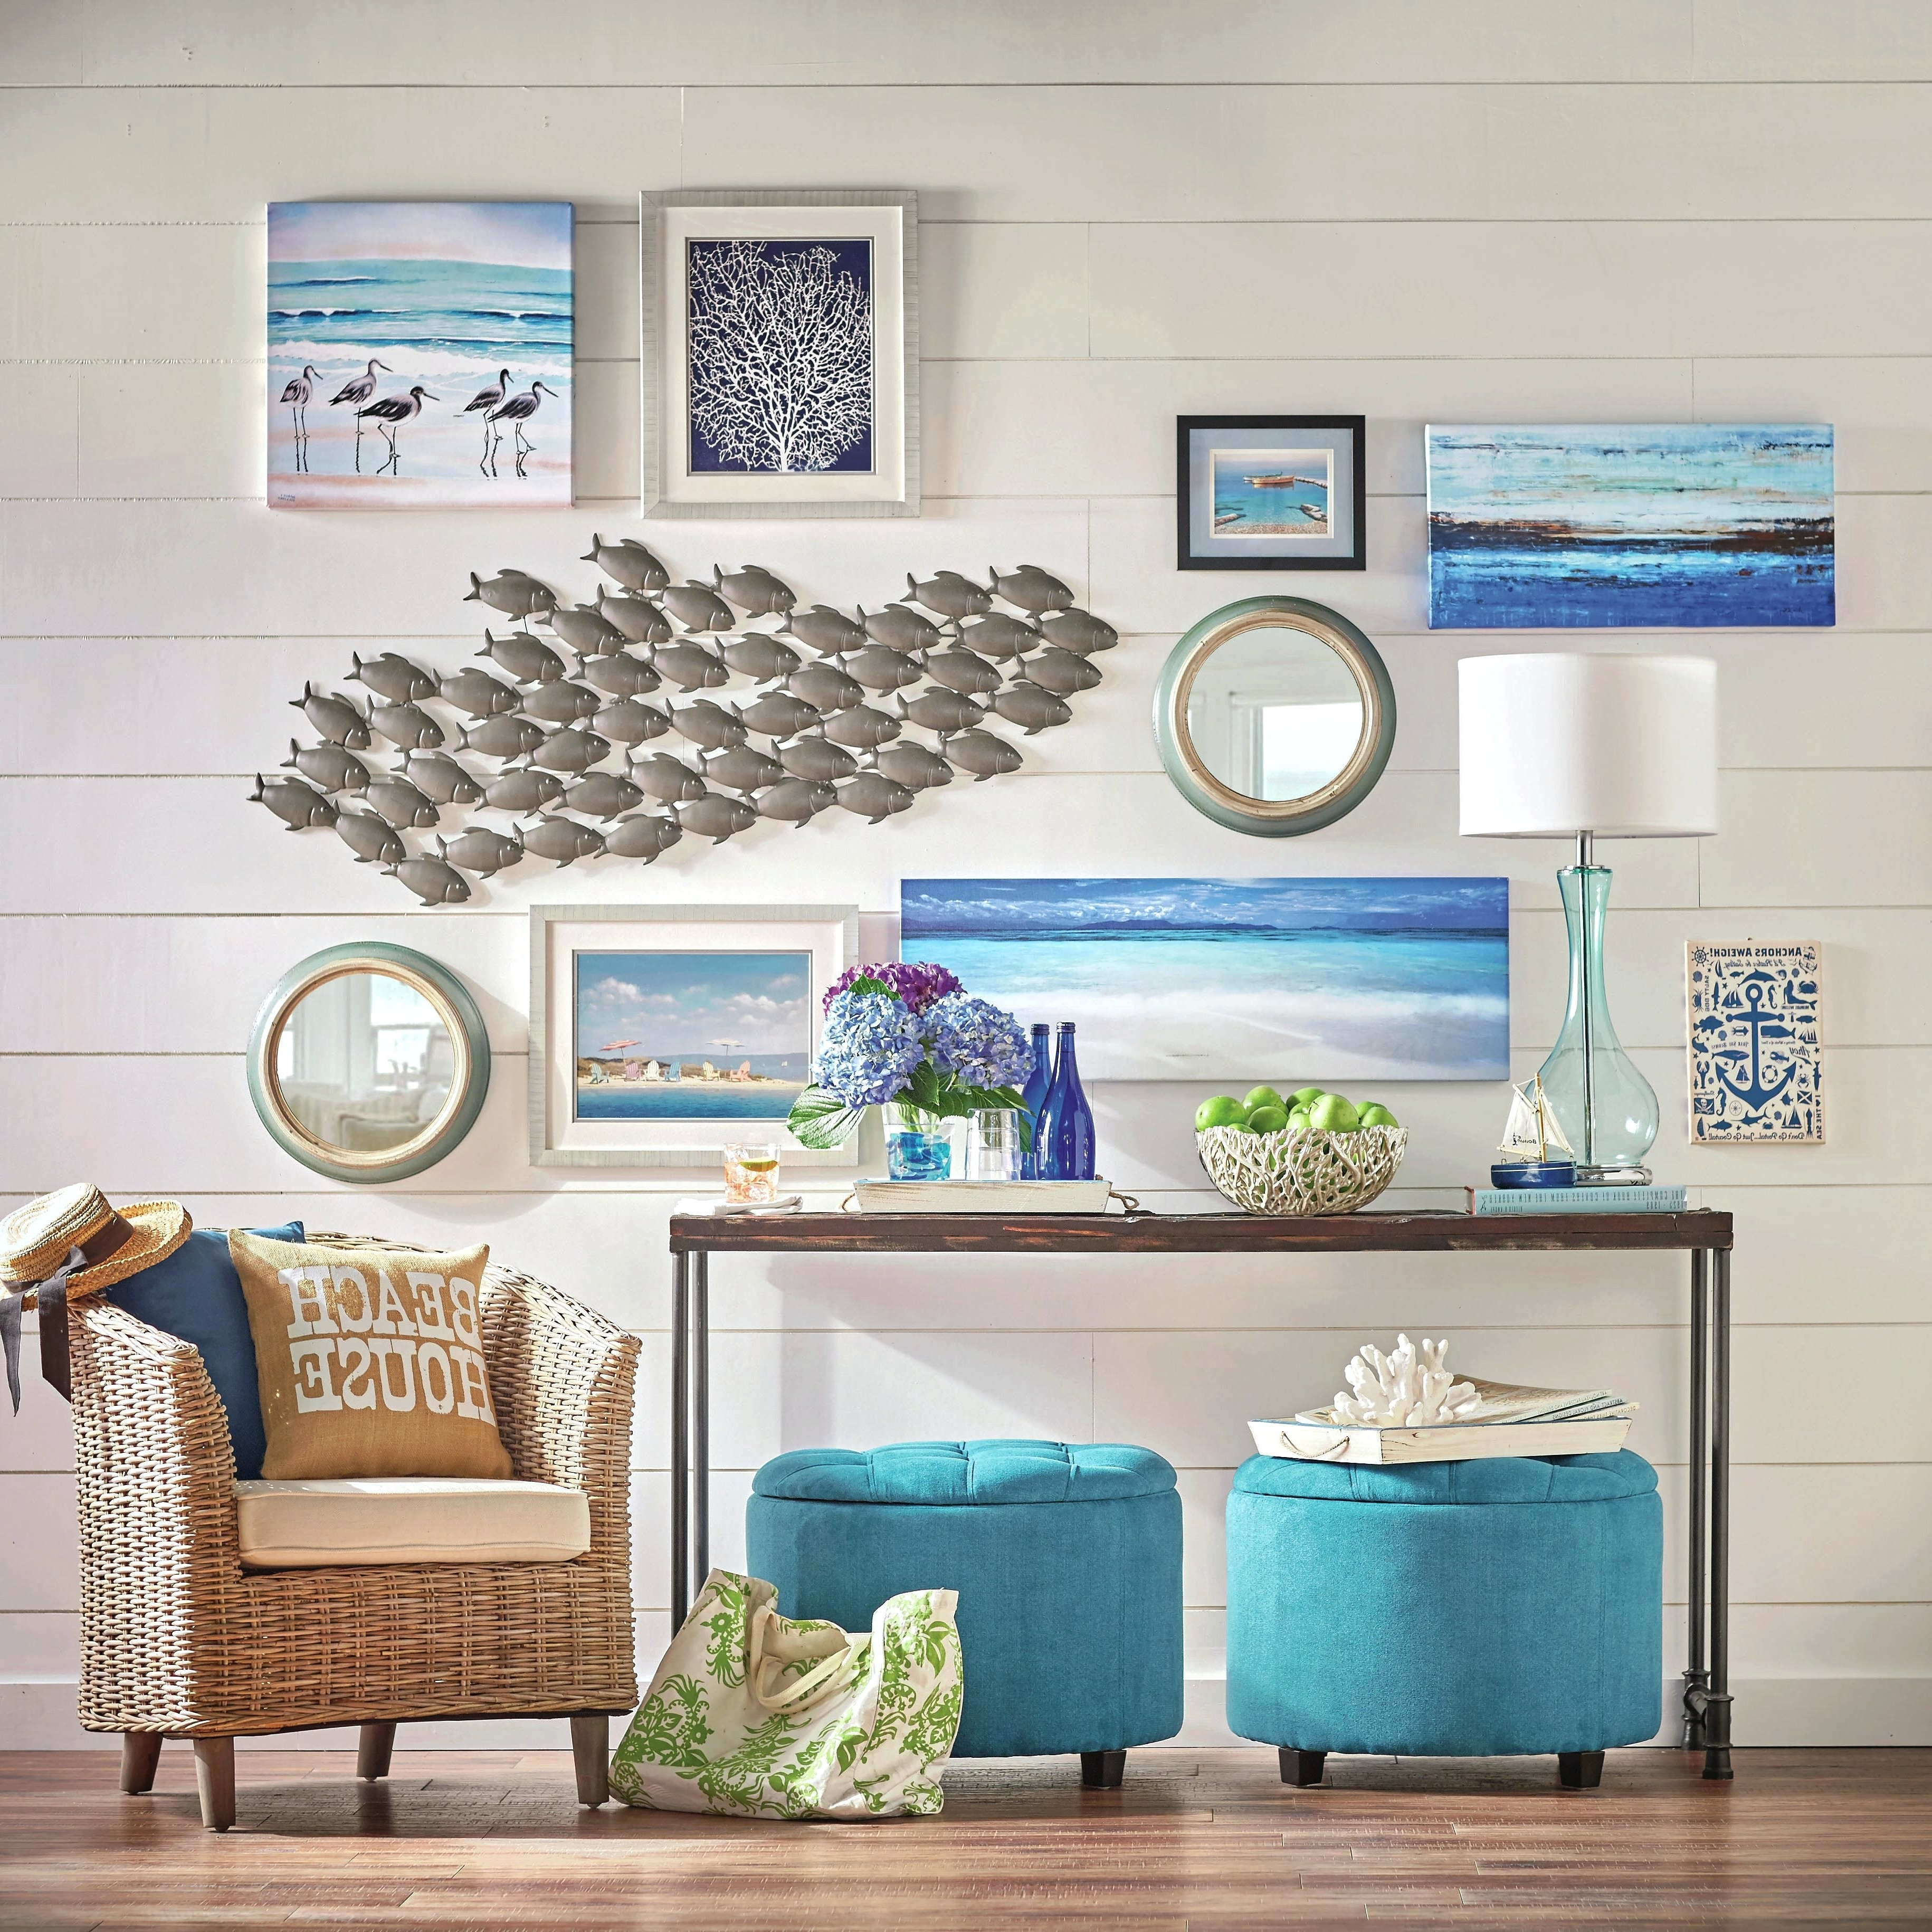 Lovely Lake House Wall Art Images – Hypermallapartments Intended For 2018 Lake House Wall Art (View 2 of 15)